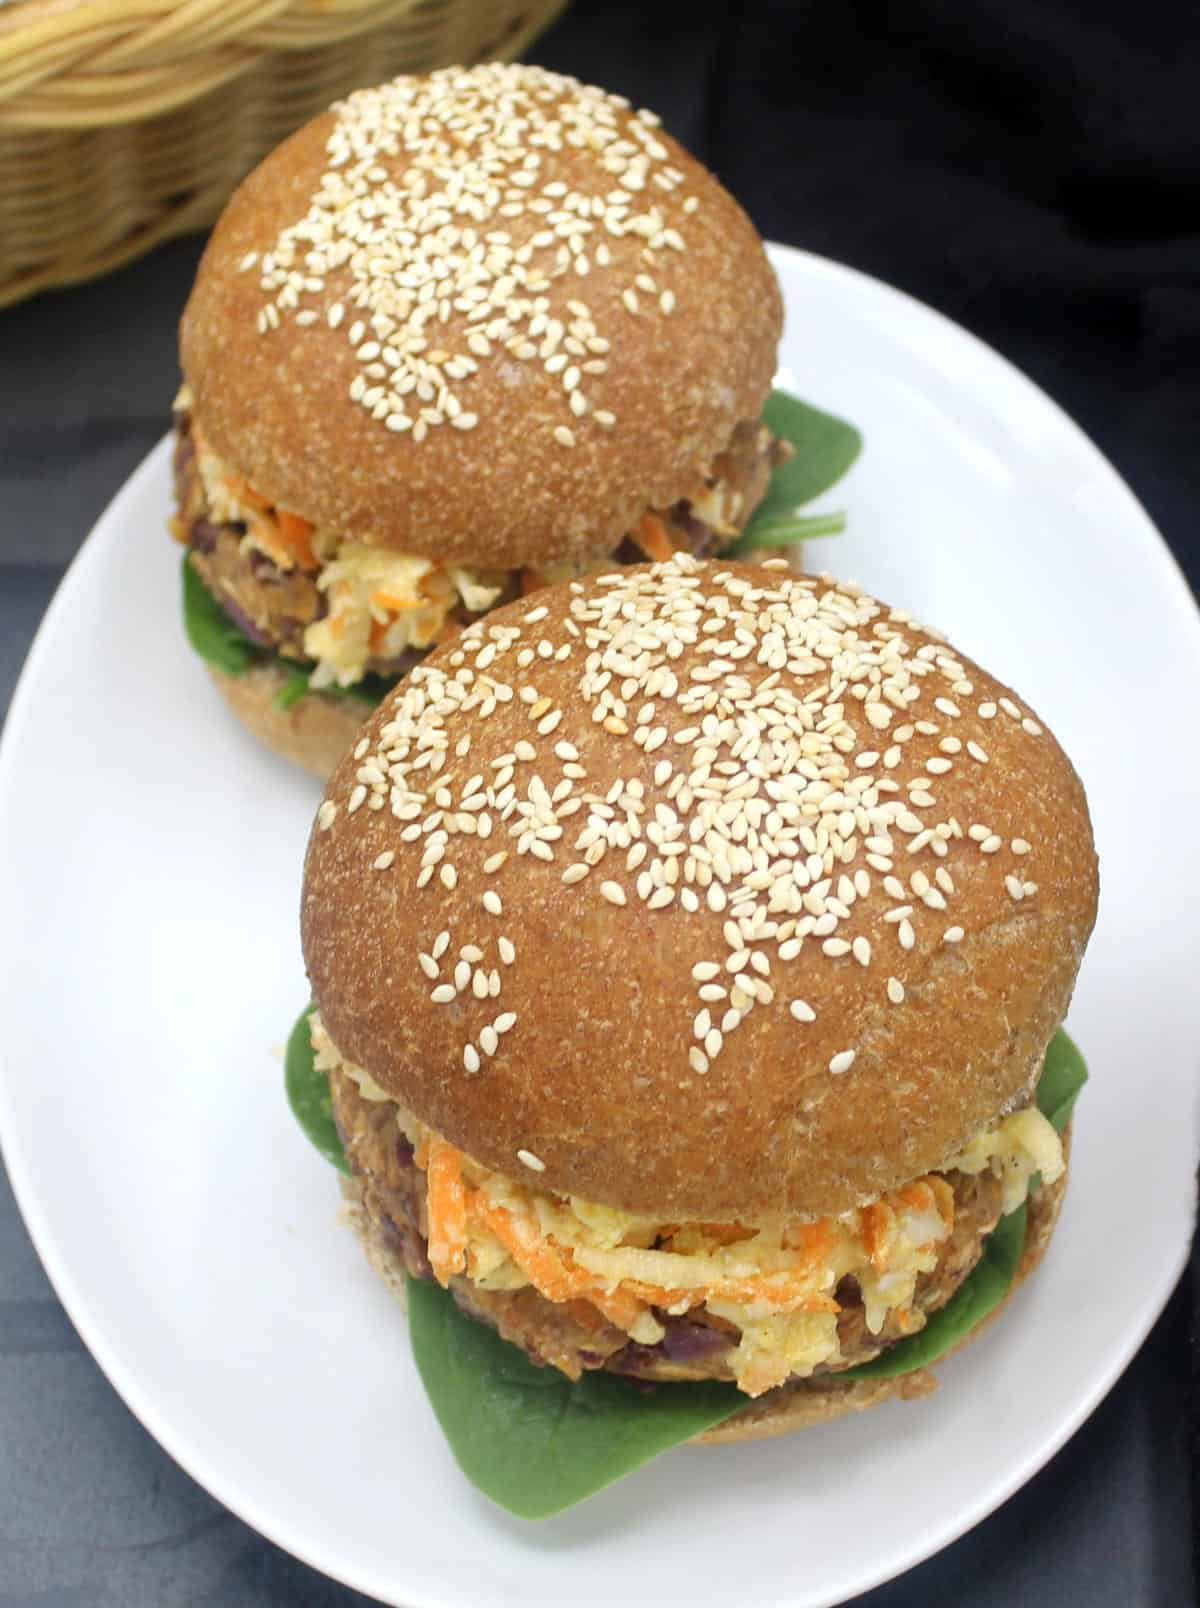 Photo of two bean and oats burgers in whole wheat buns with sesame seeds on a white plate.